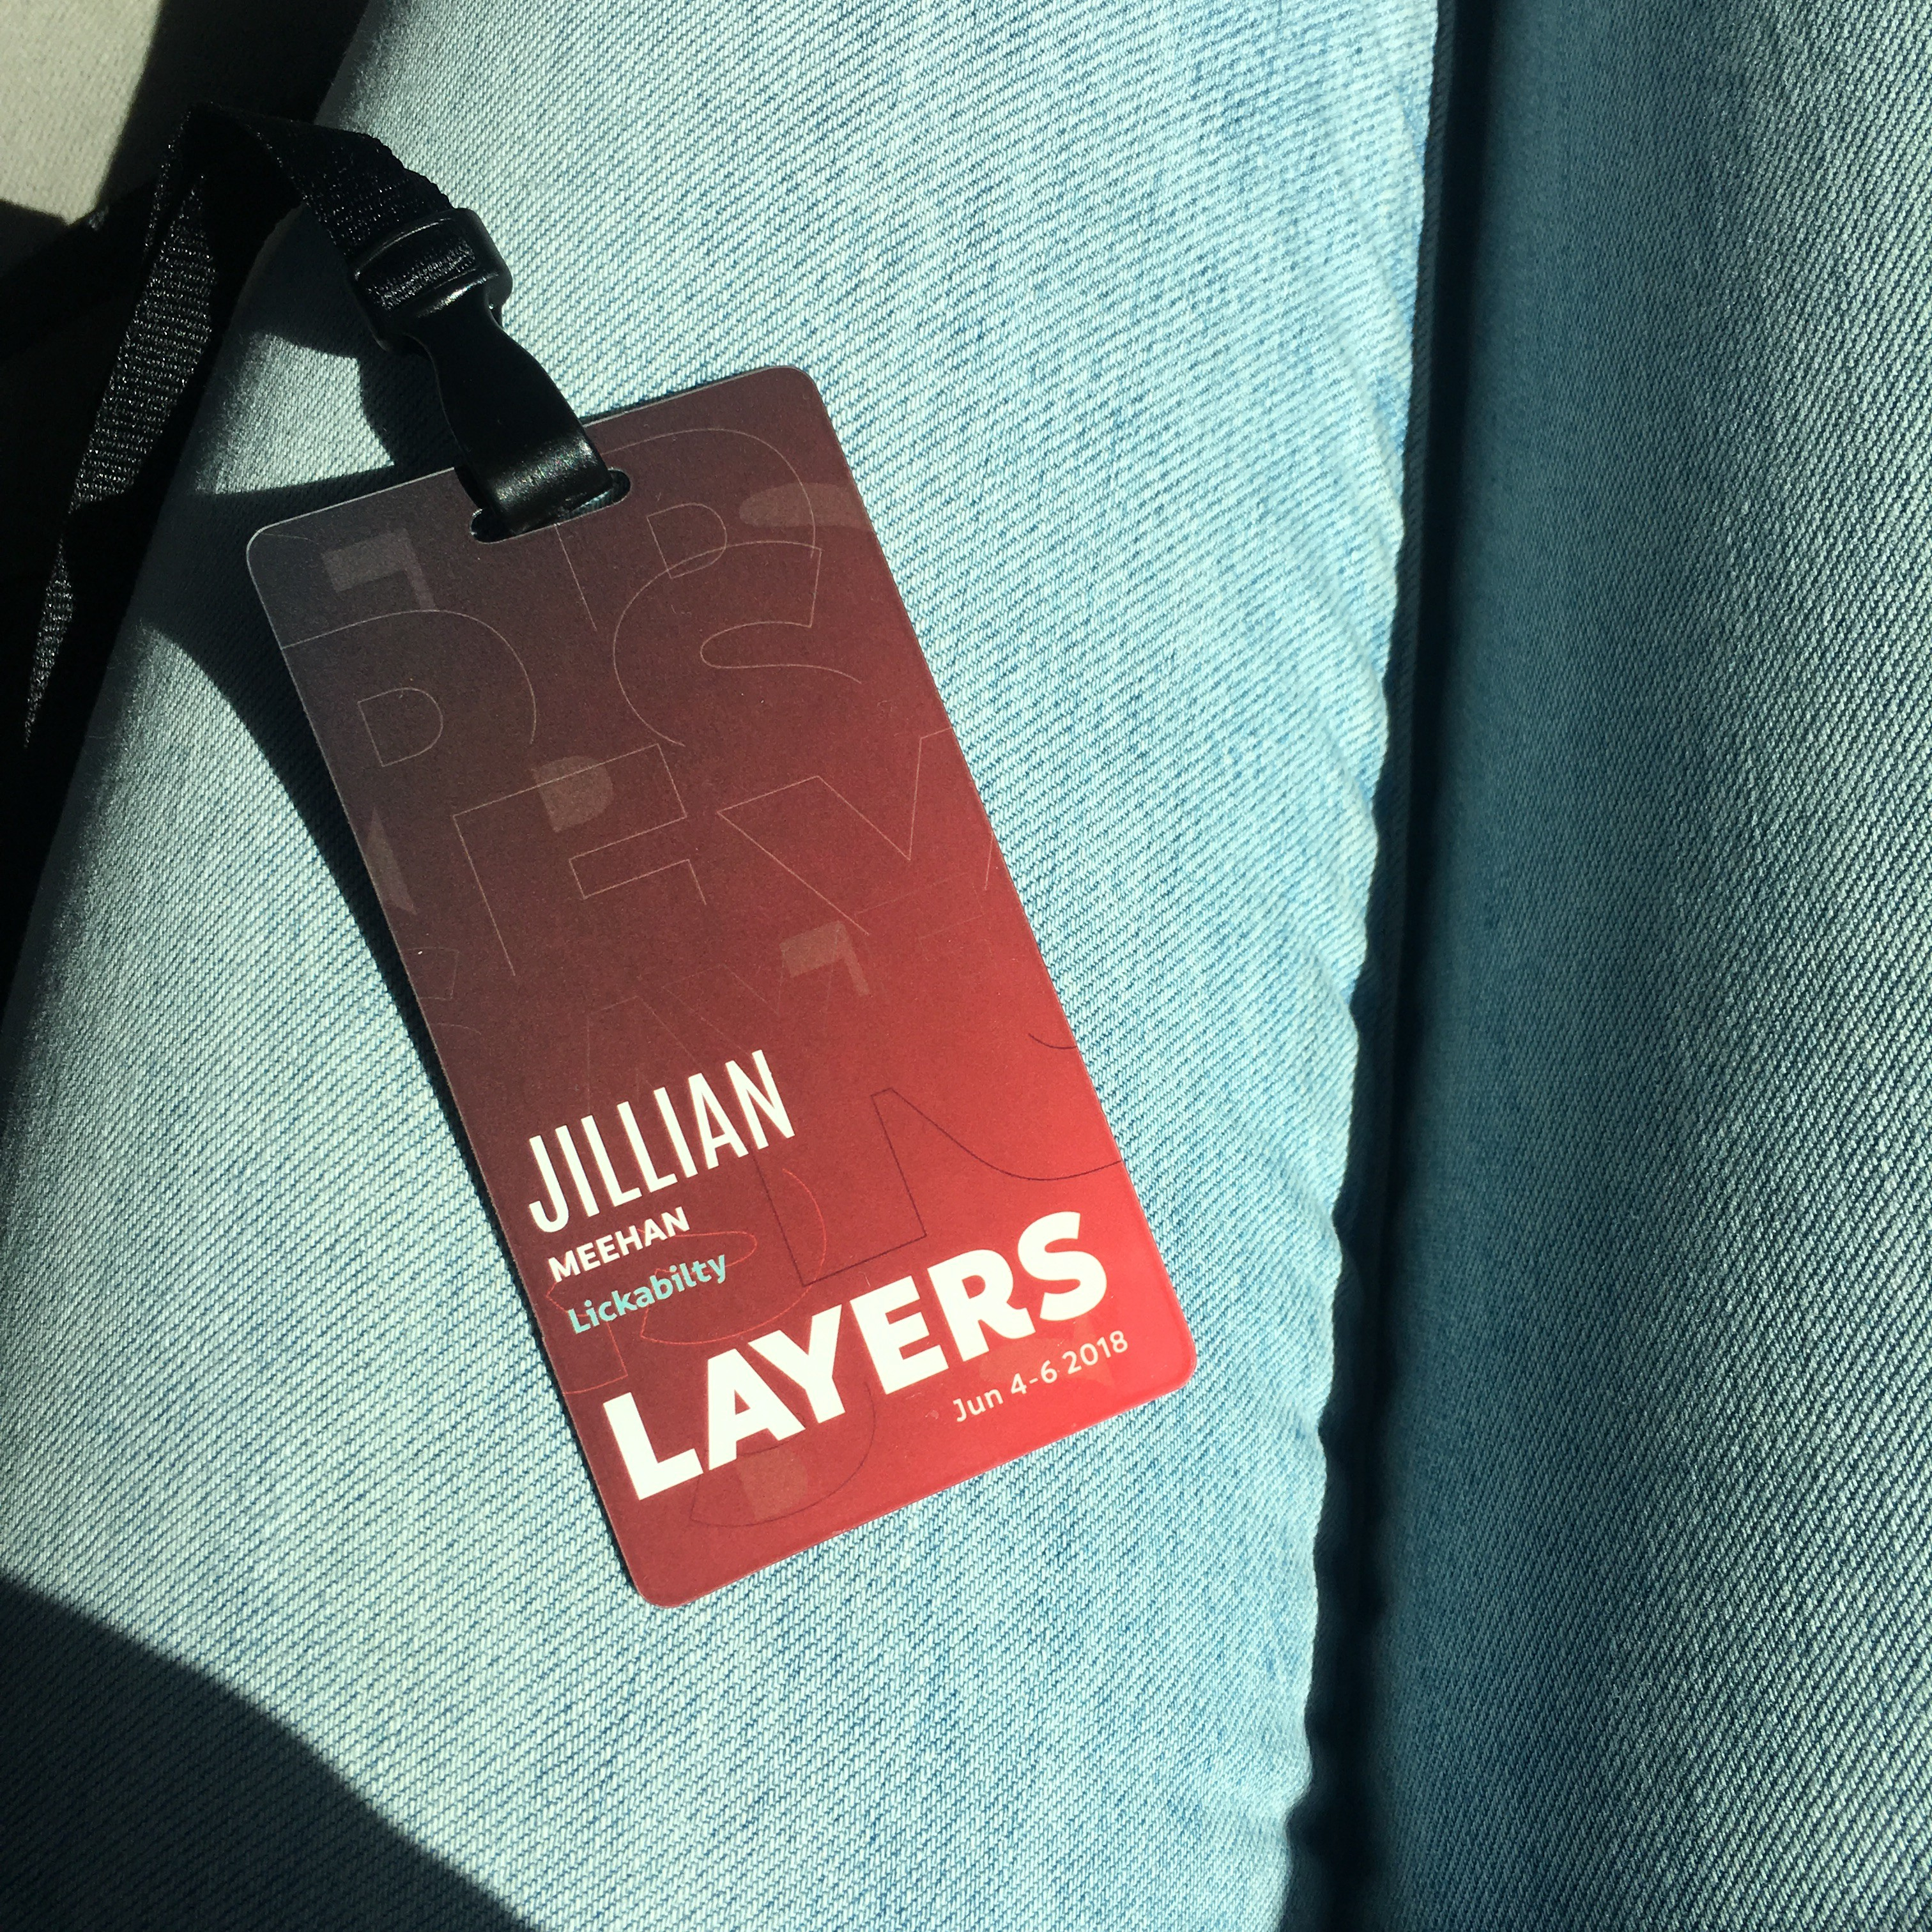 Jillian's Layers badge.